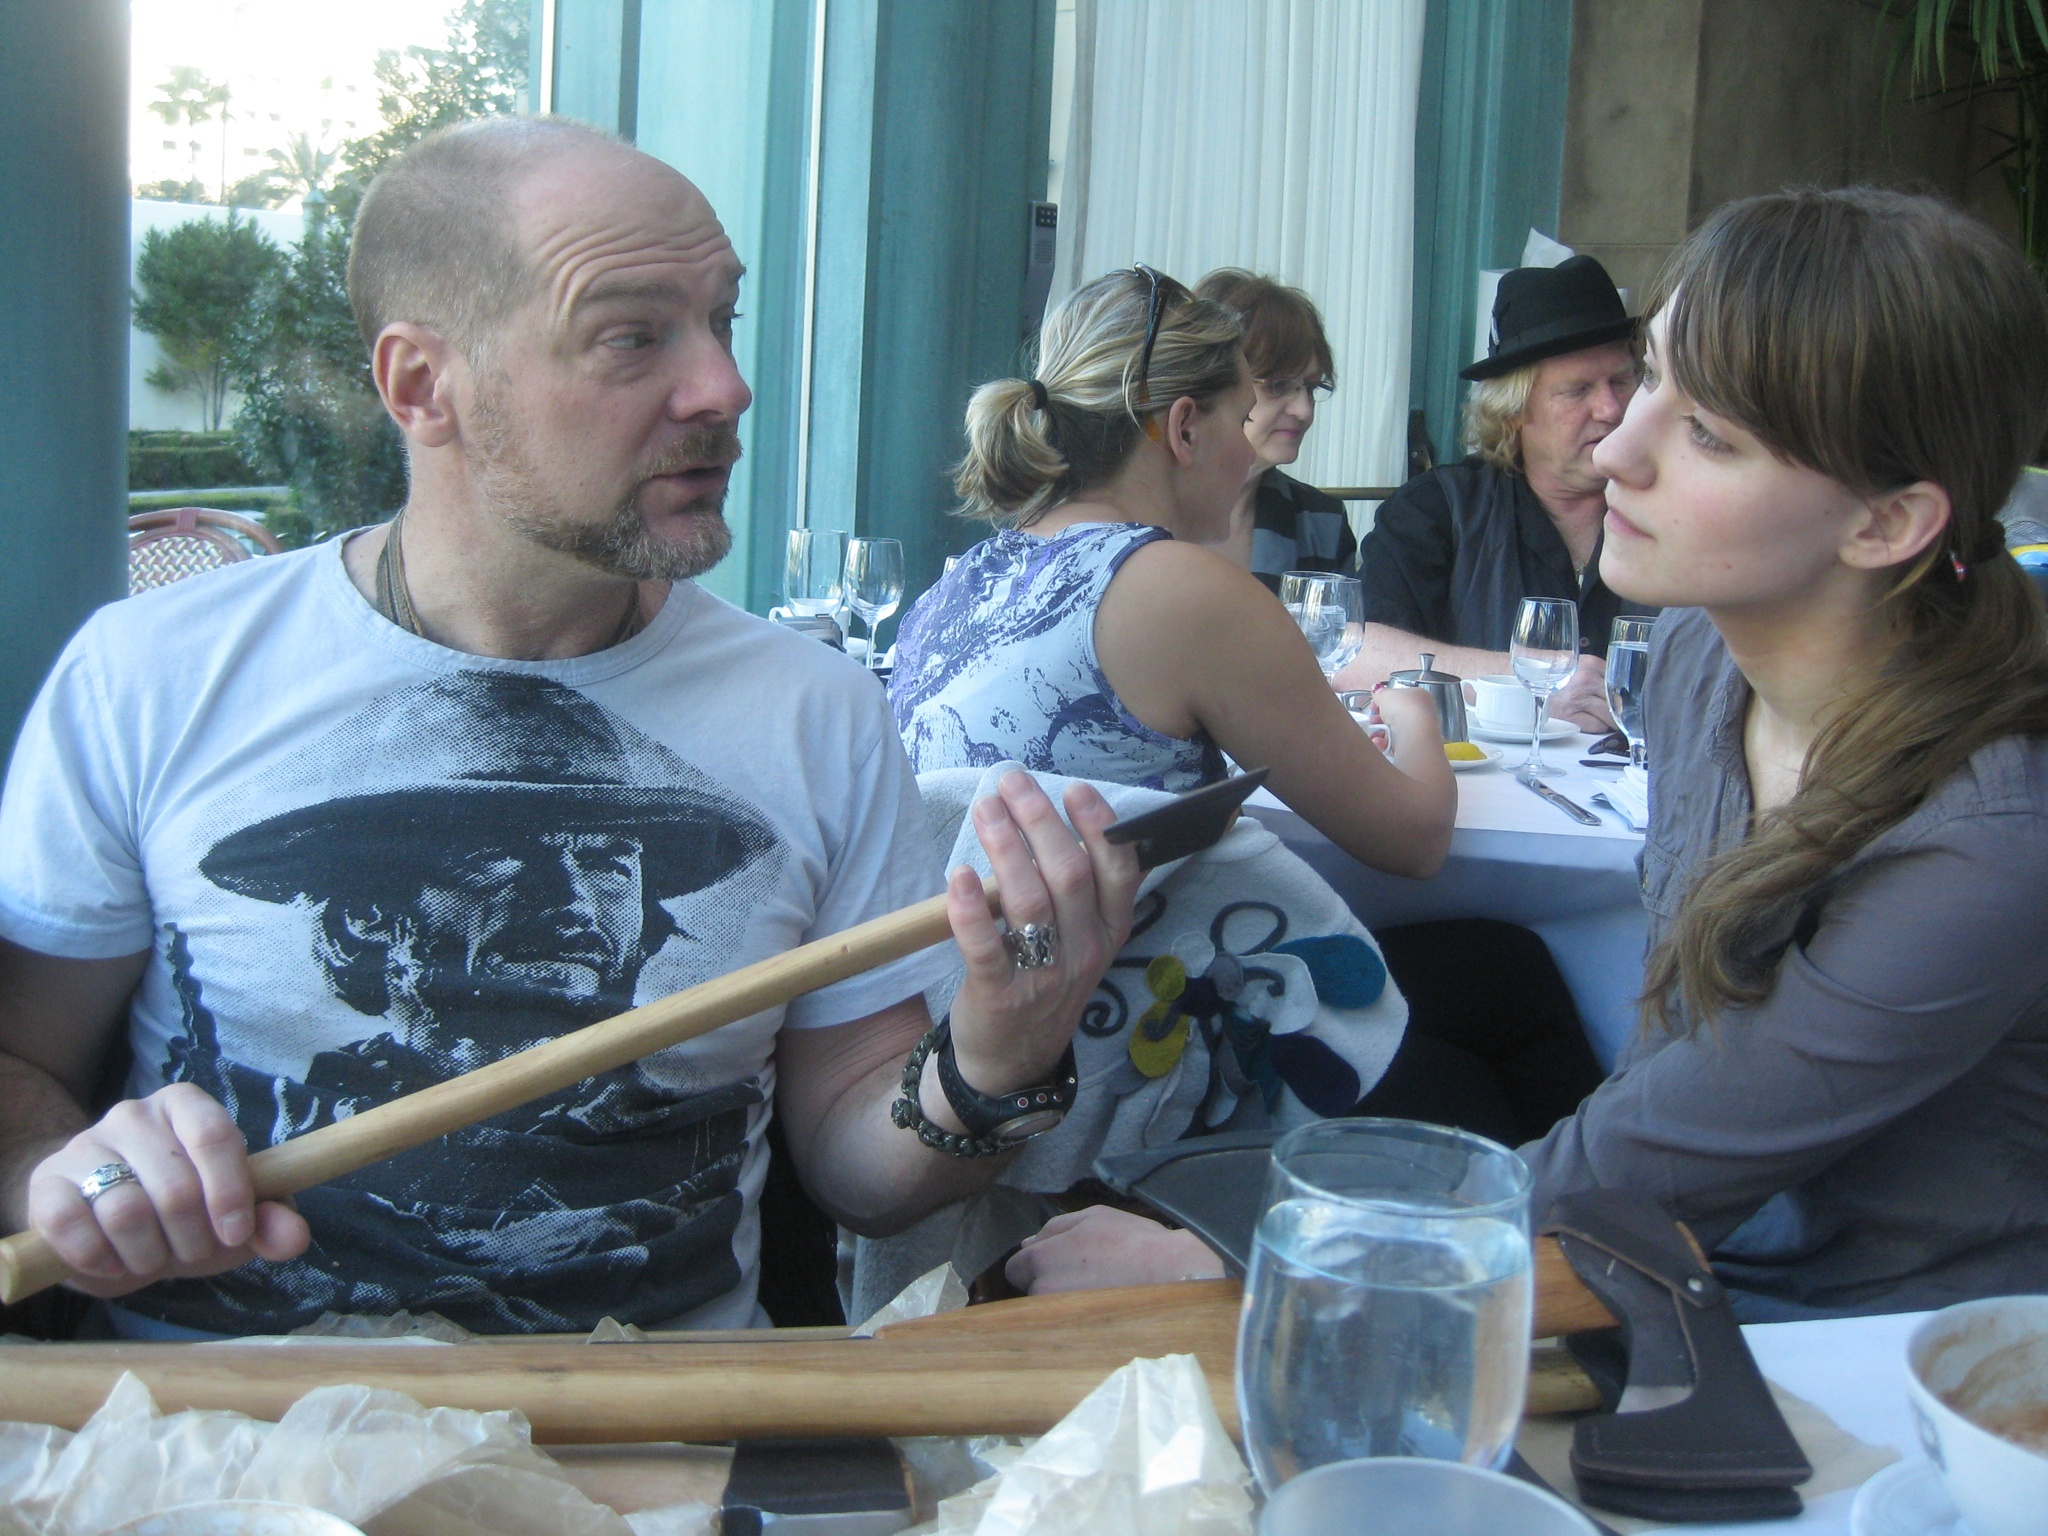 discussing axes